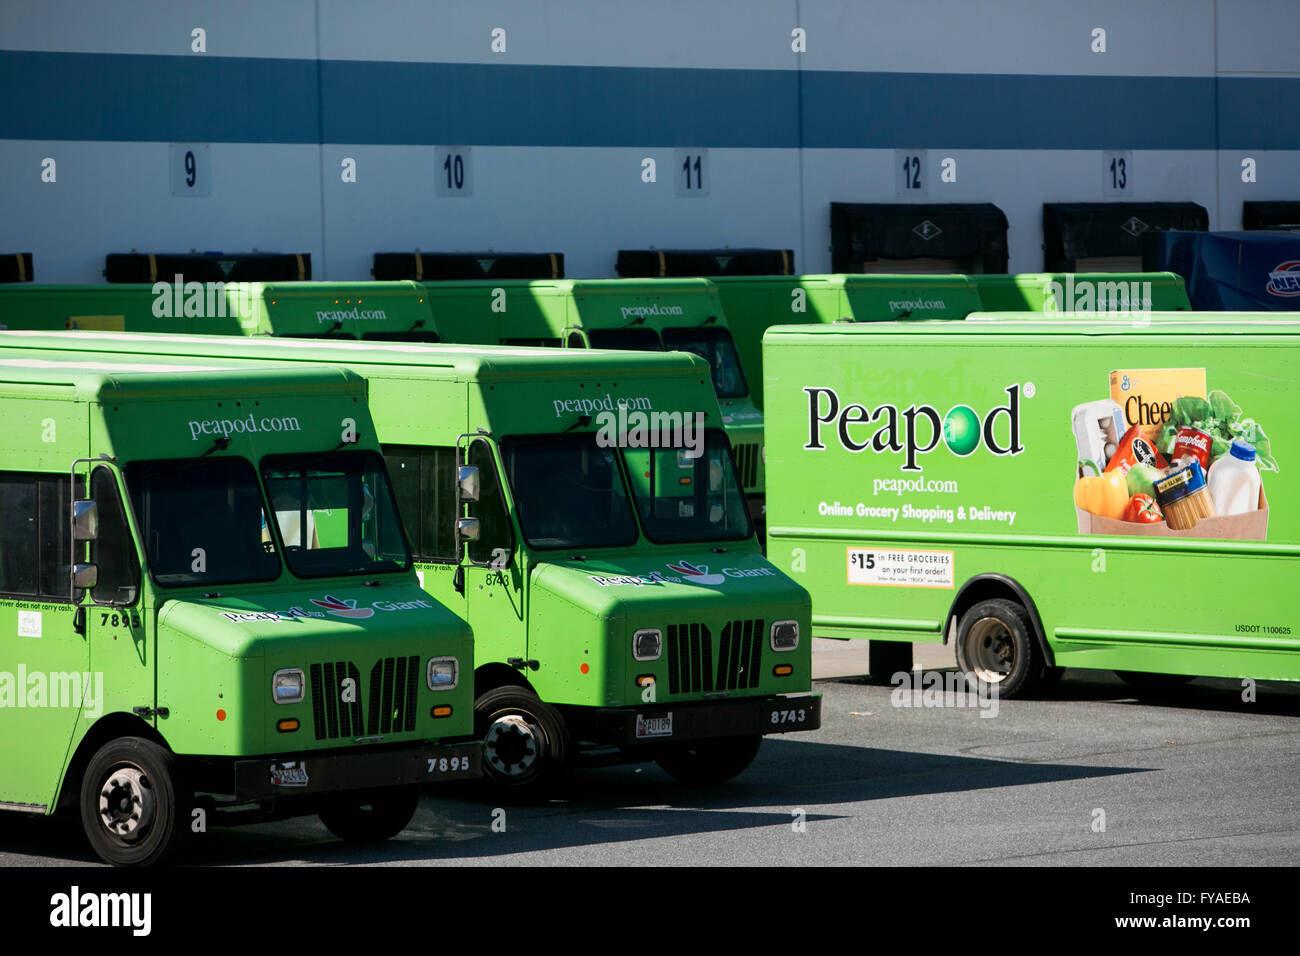 Delivery vans featuring Peapod logos outside of a distribution warehouse in Hanover, Maryland on April 10, 2016. - Stock Image